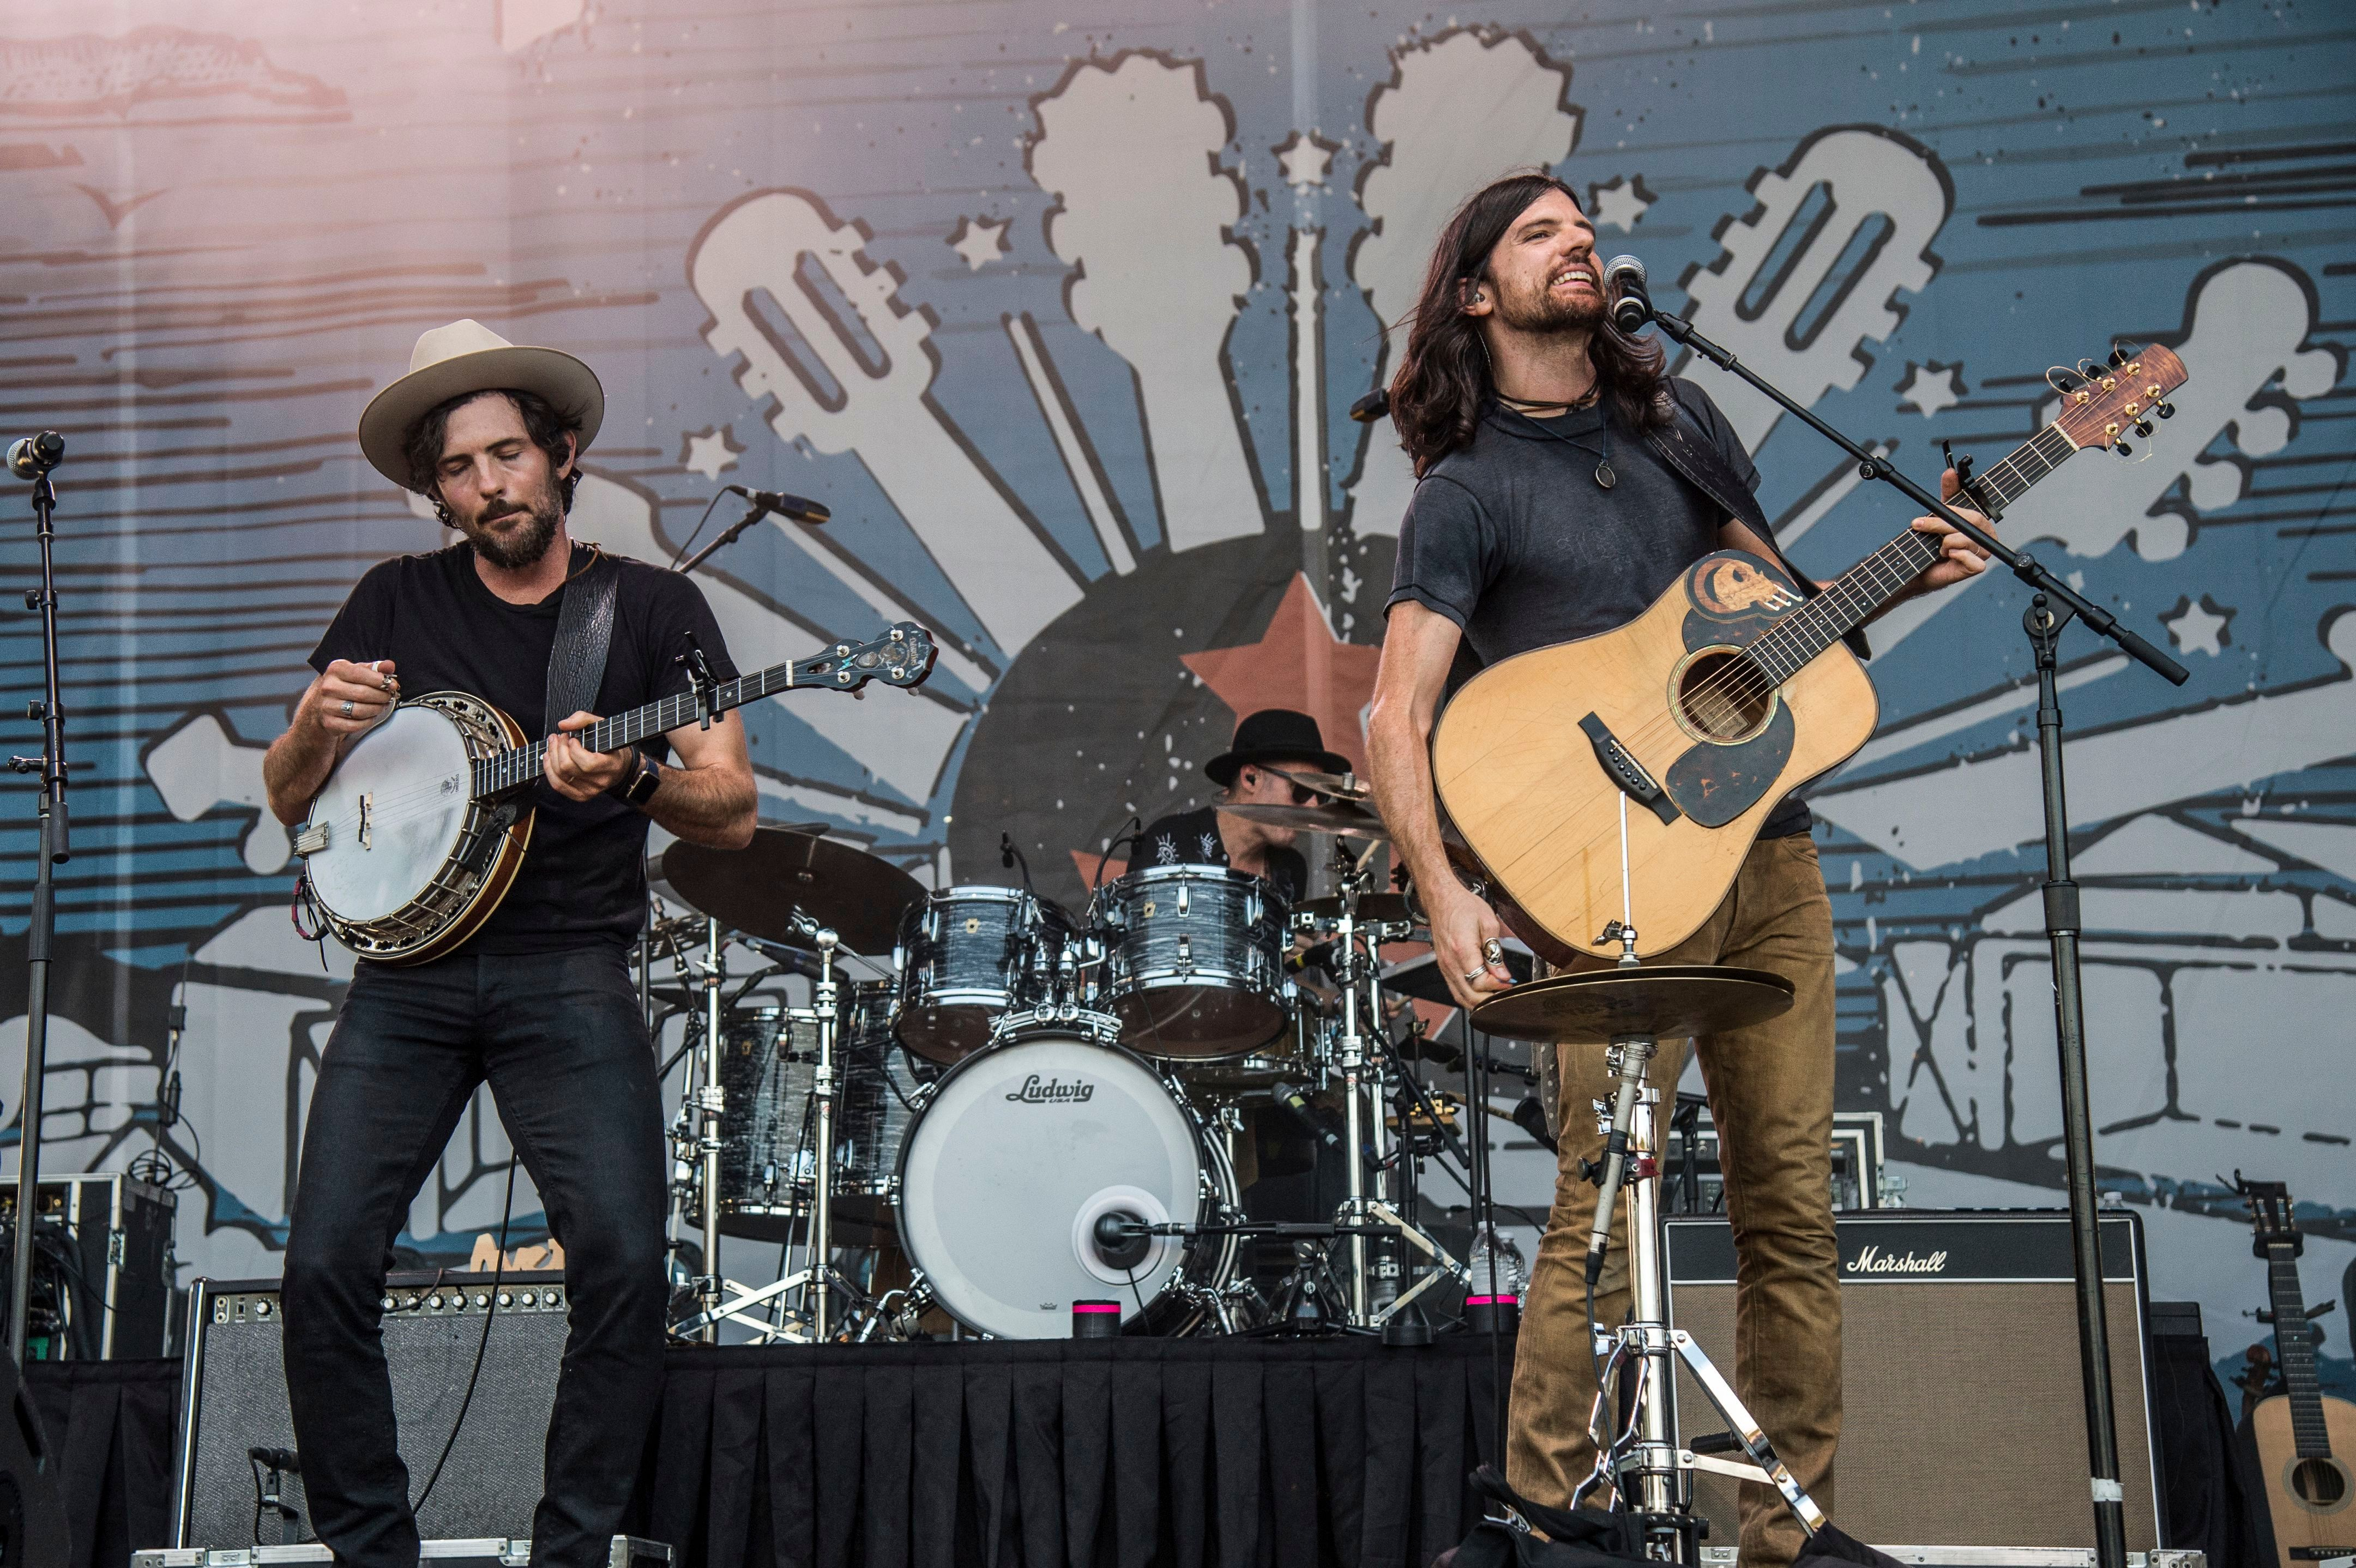 Avett Brothers, Tyler Childers, Midland Set for 2019 Forecastle Festival